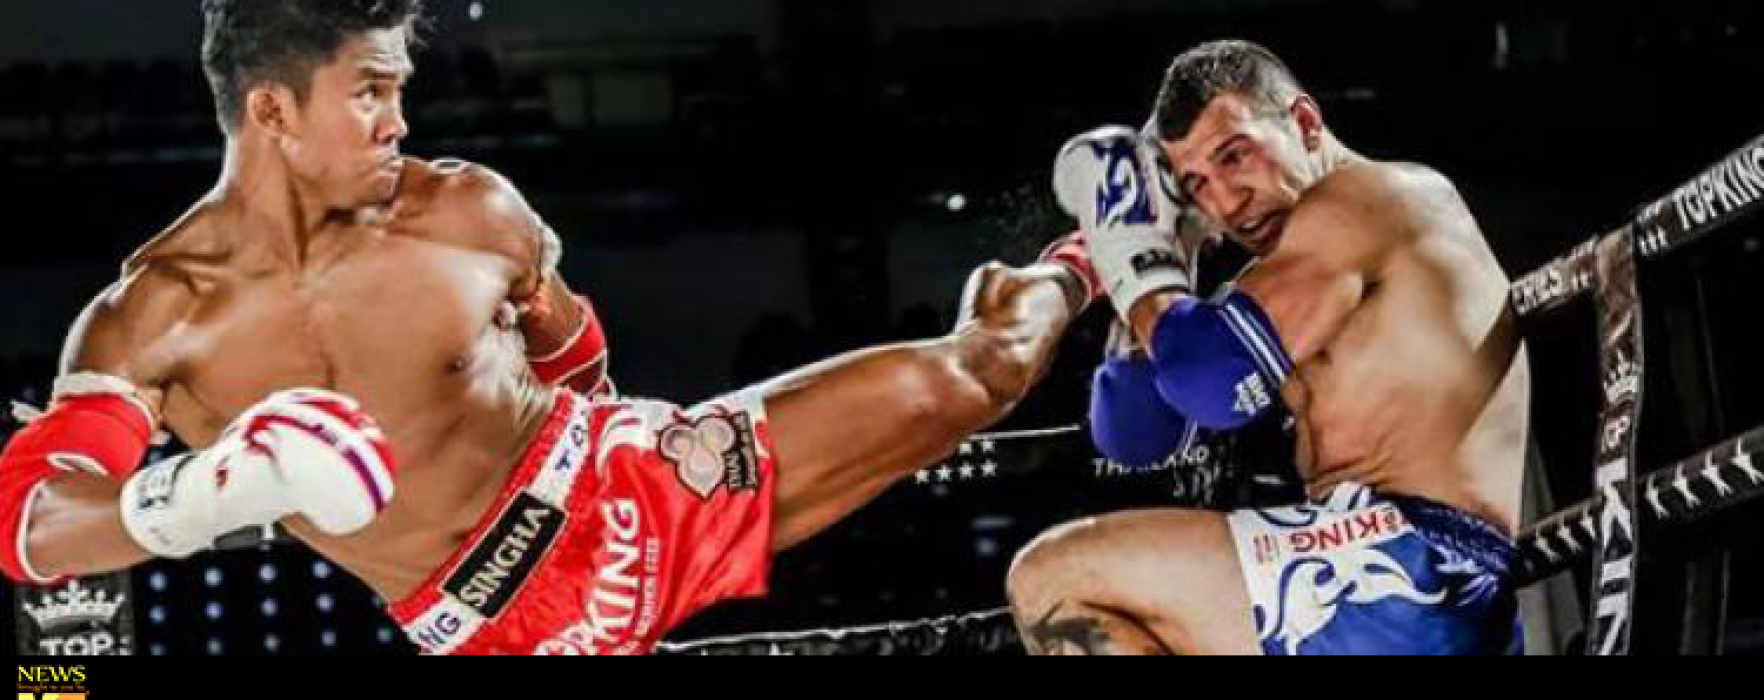 Video: Buakaw vs Steve Moxon & Pakorn vs Jimmy Vienot – TopKing World Series Paris, France – 15 November 2014